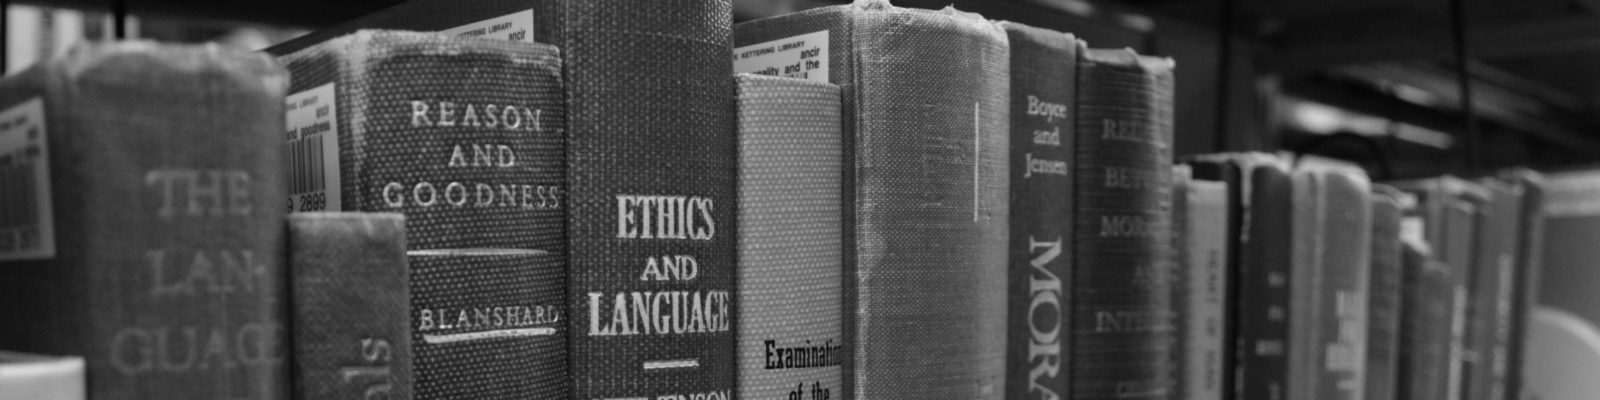 Ethics and Language